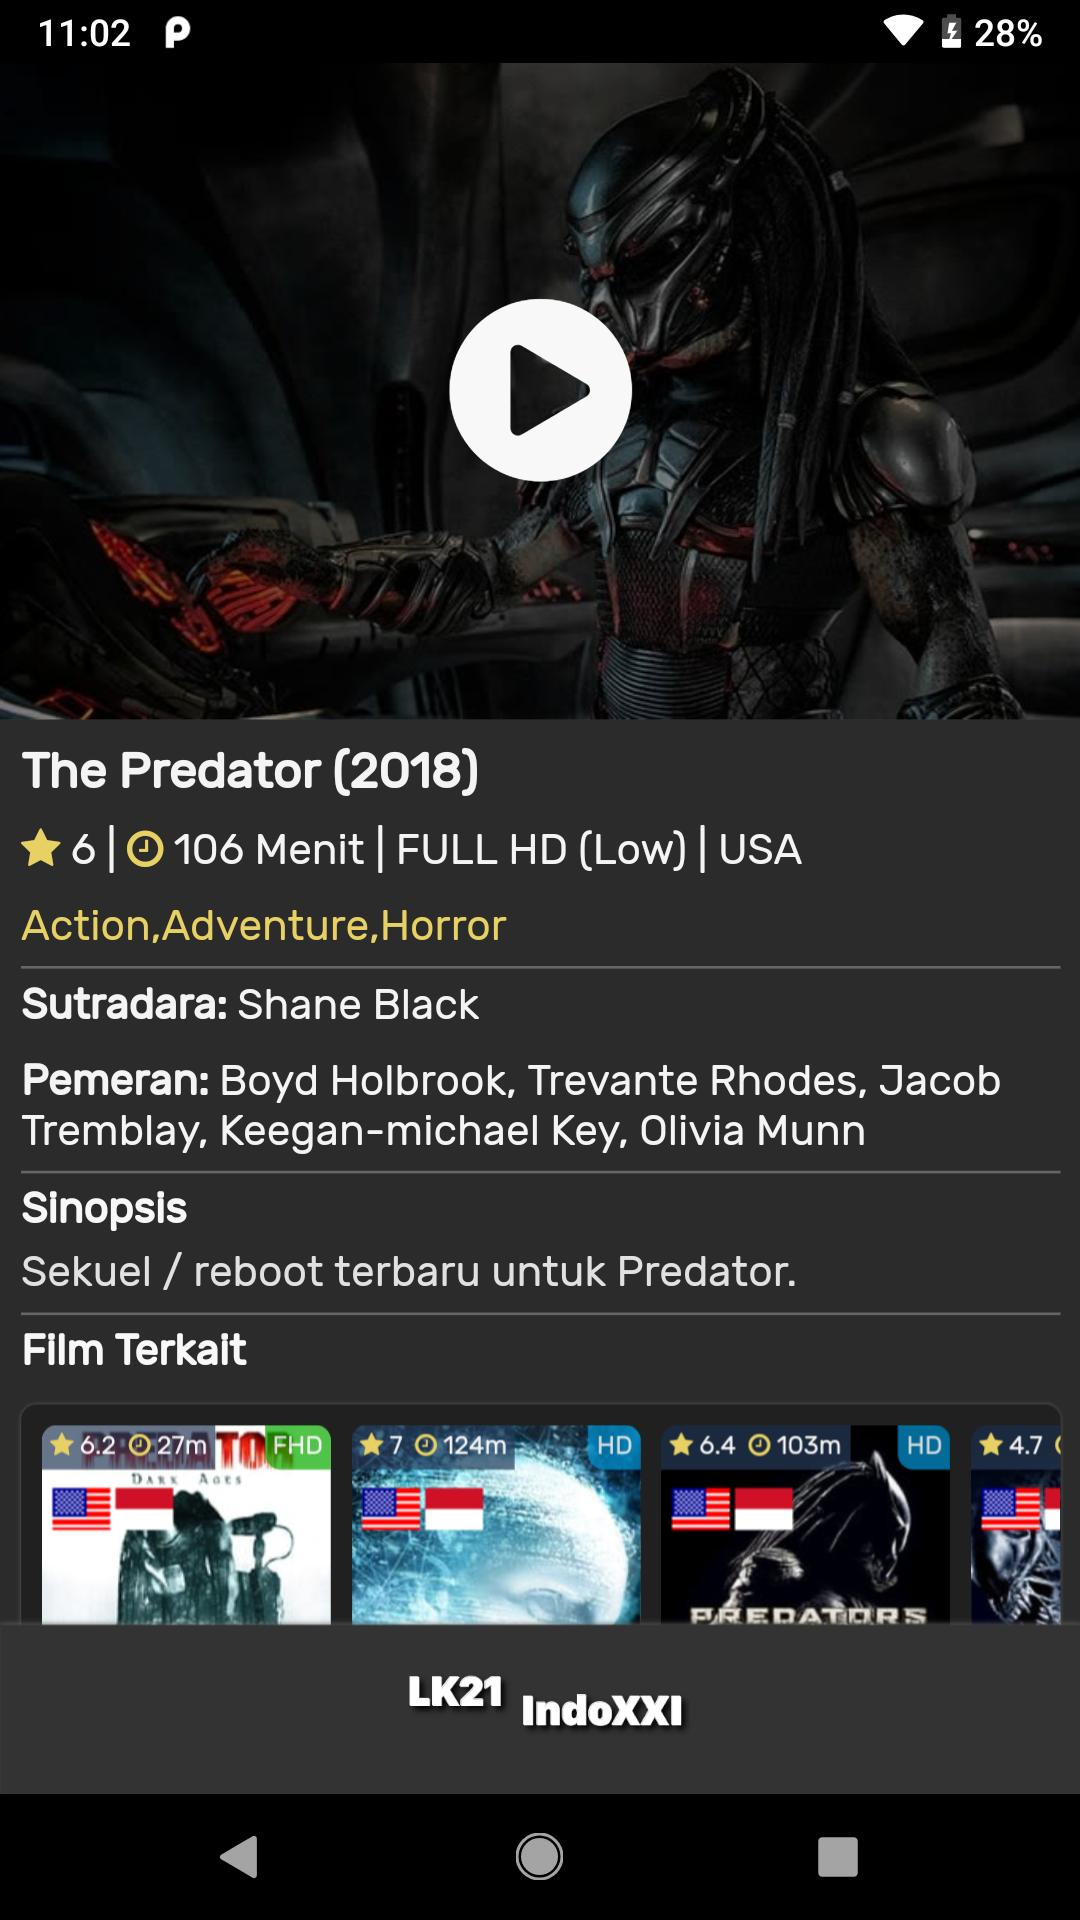 Nonton Lk21 IndoXXI Pro FHD for Android - APK Download